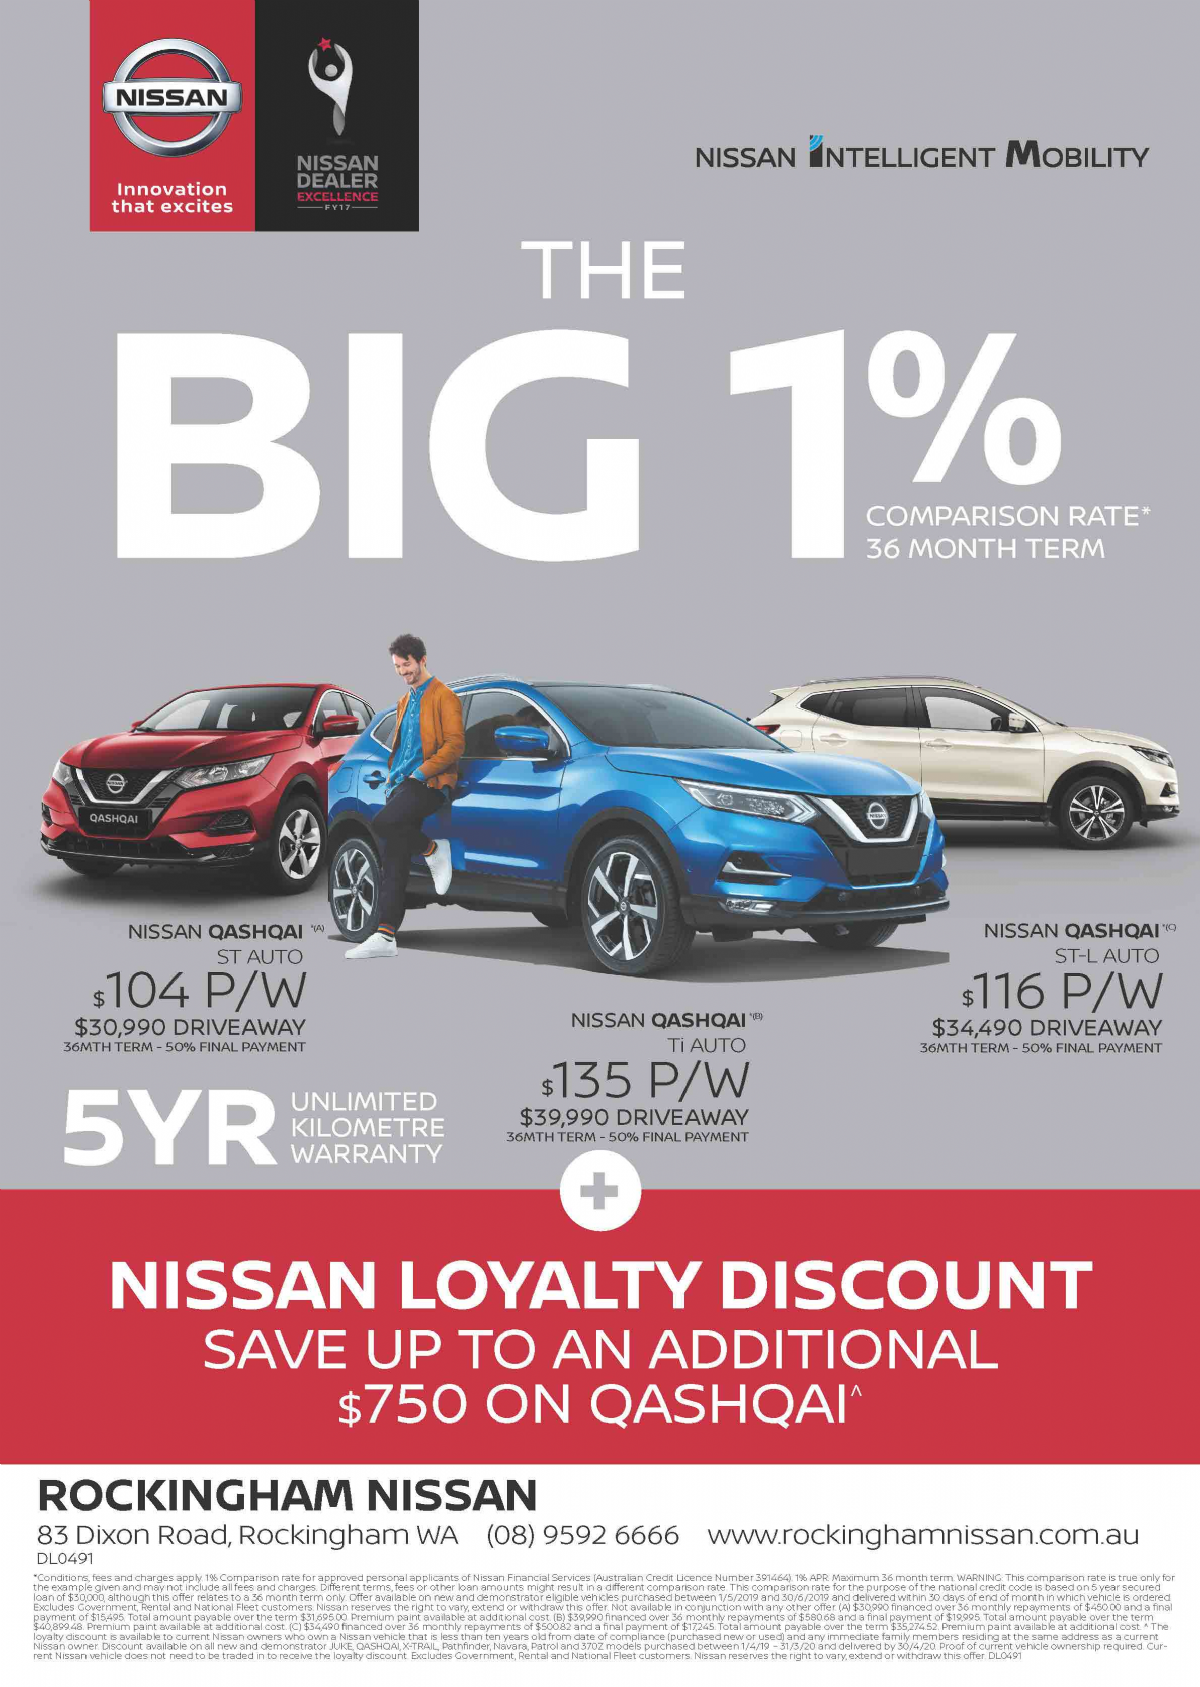 Nissan The Big 1% QashQai